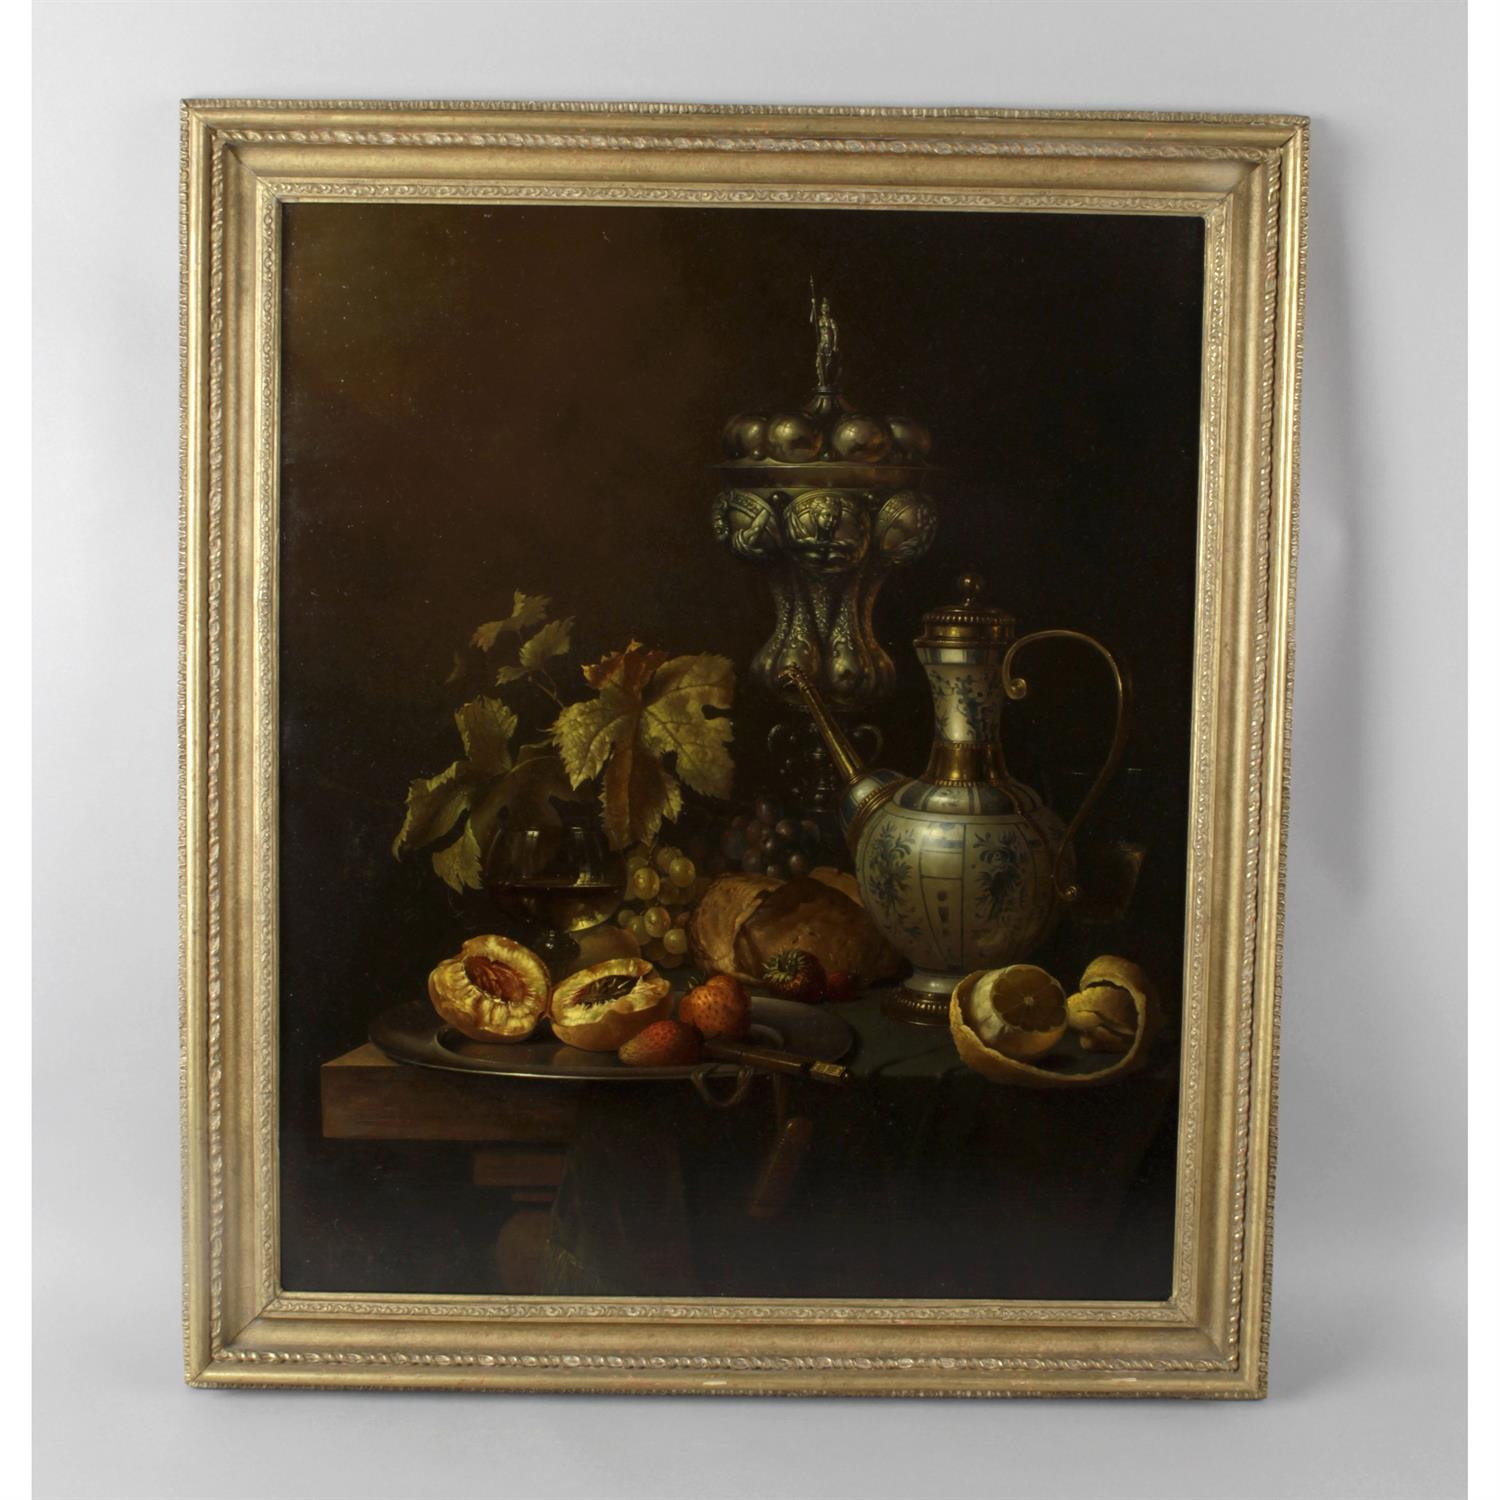 Gyula Bubarnik (b.1936), signed oil on panel still life study of a table of fruit and wine. - Image 2 of 2